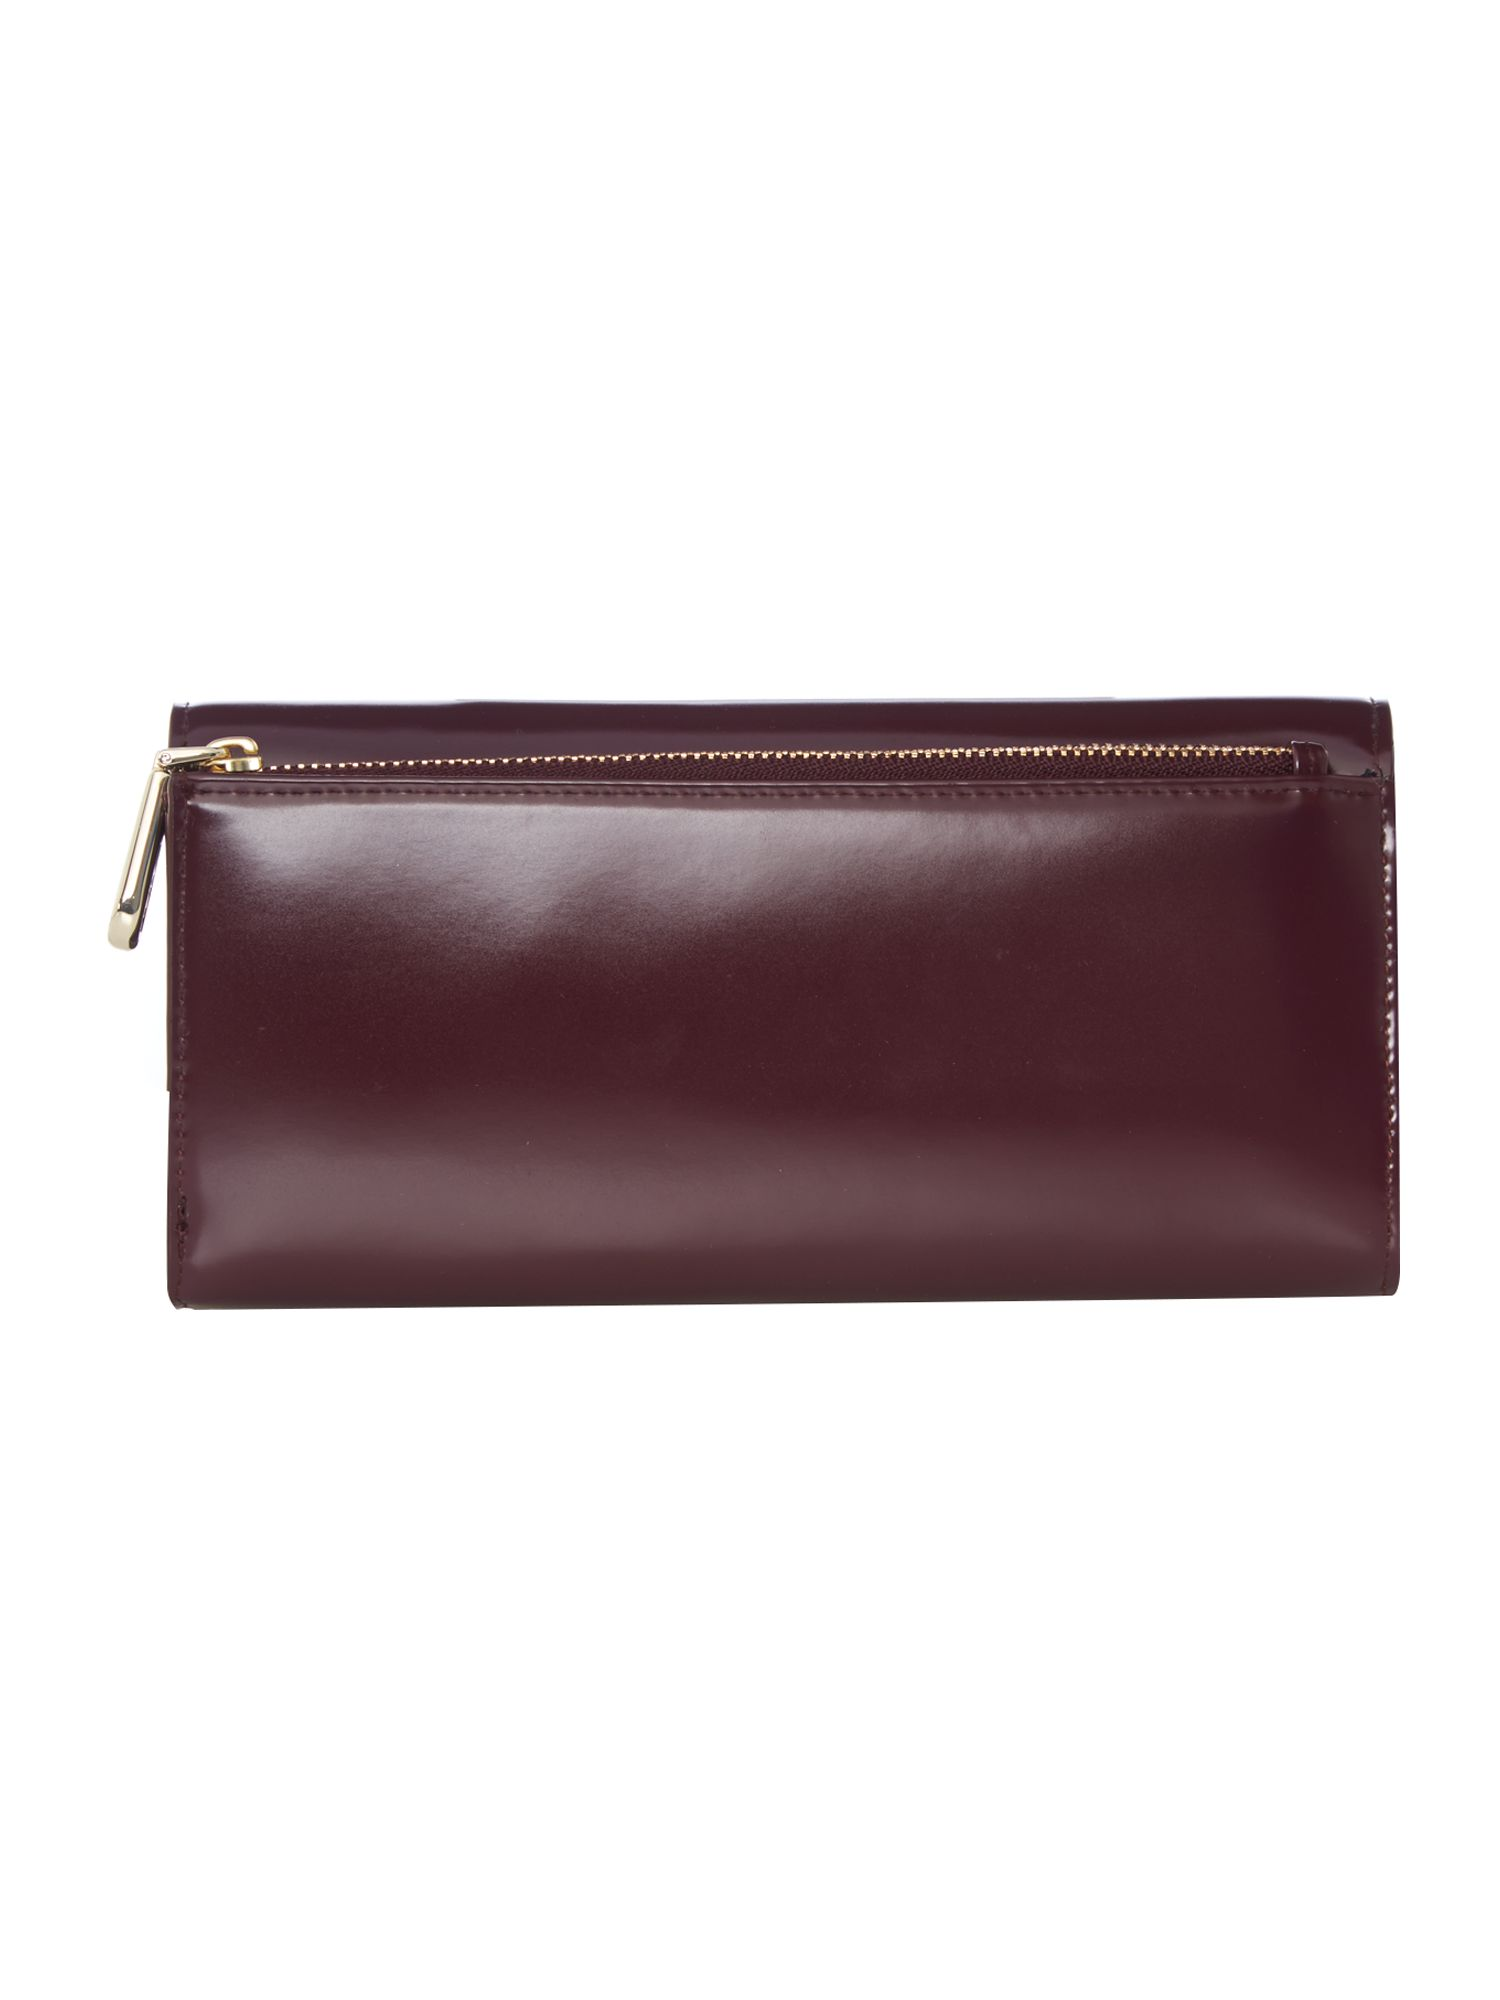 Hudson purple large flap over purse